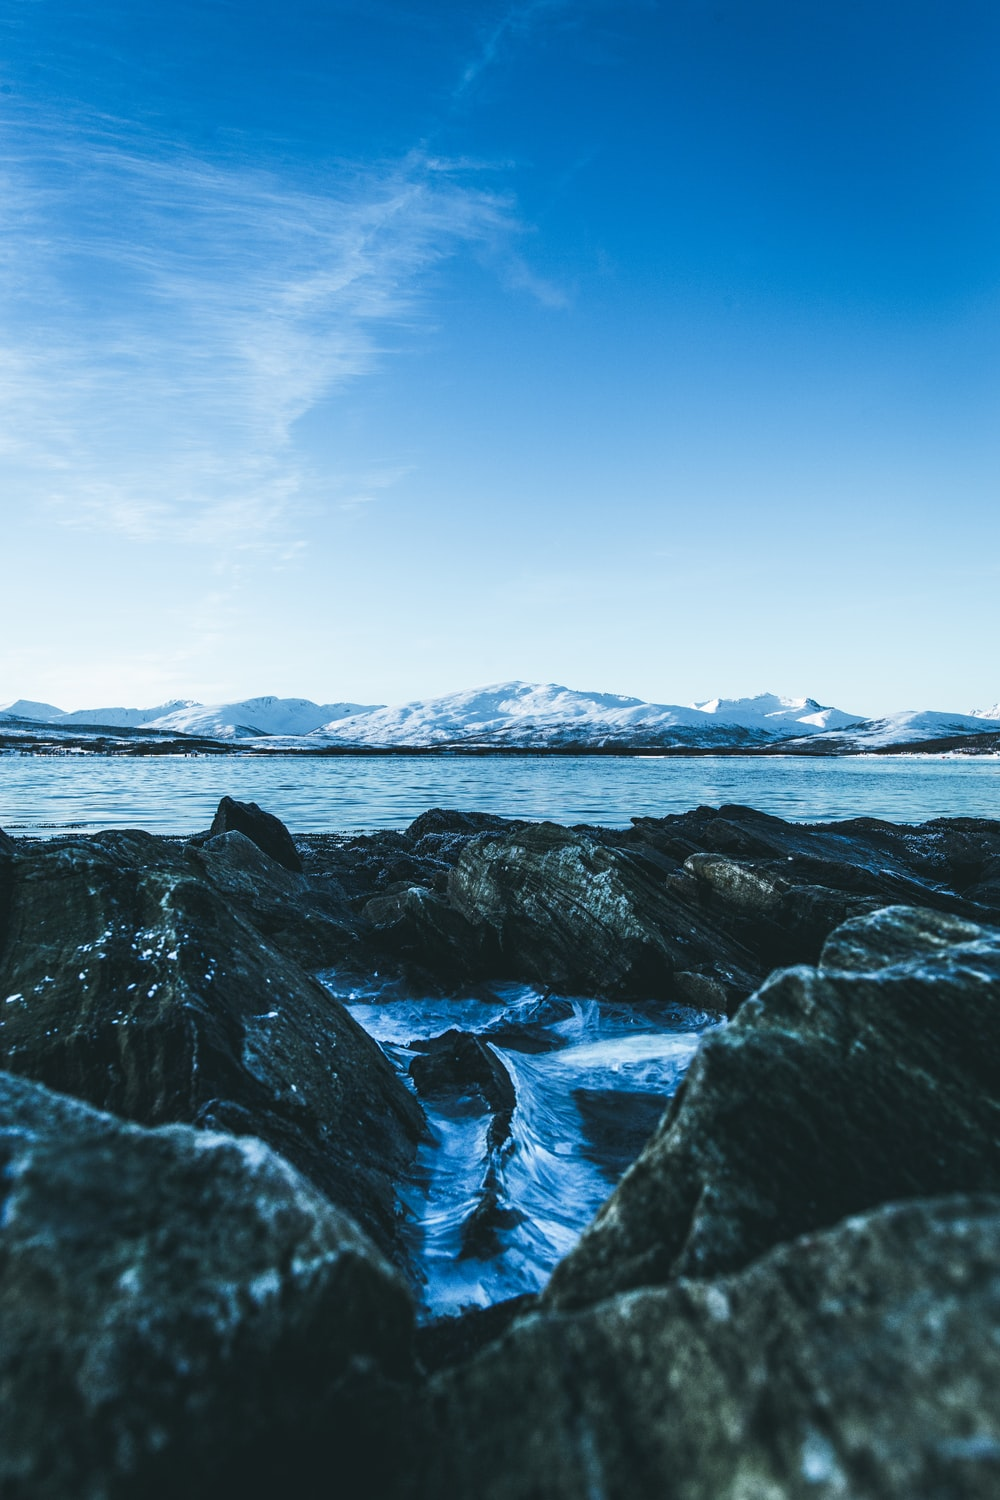 rocks near body of water under blue sky during daytime